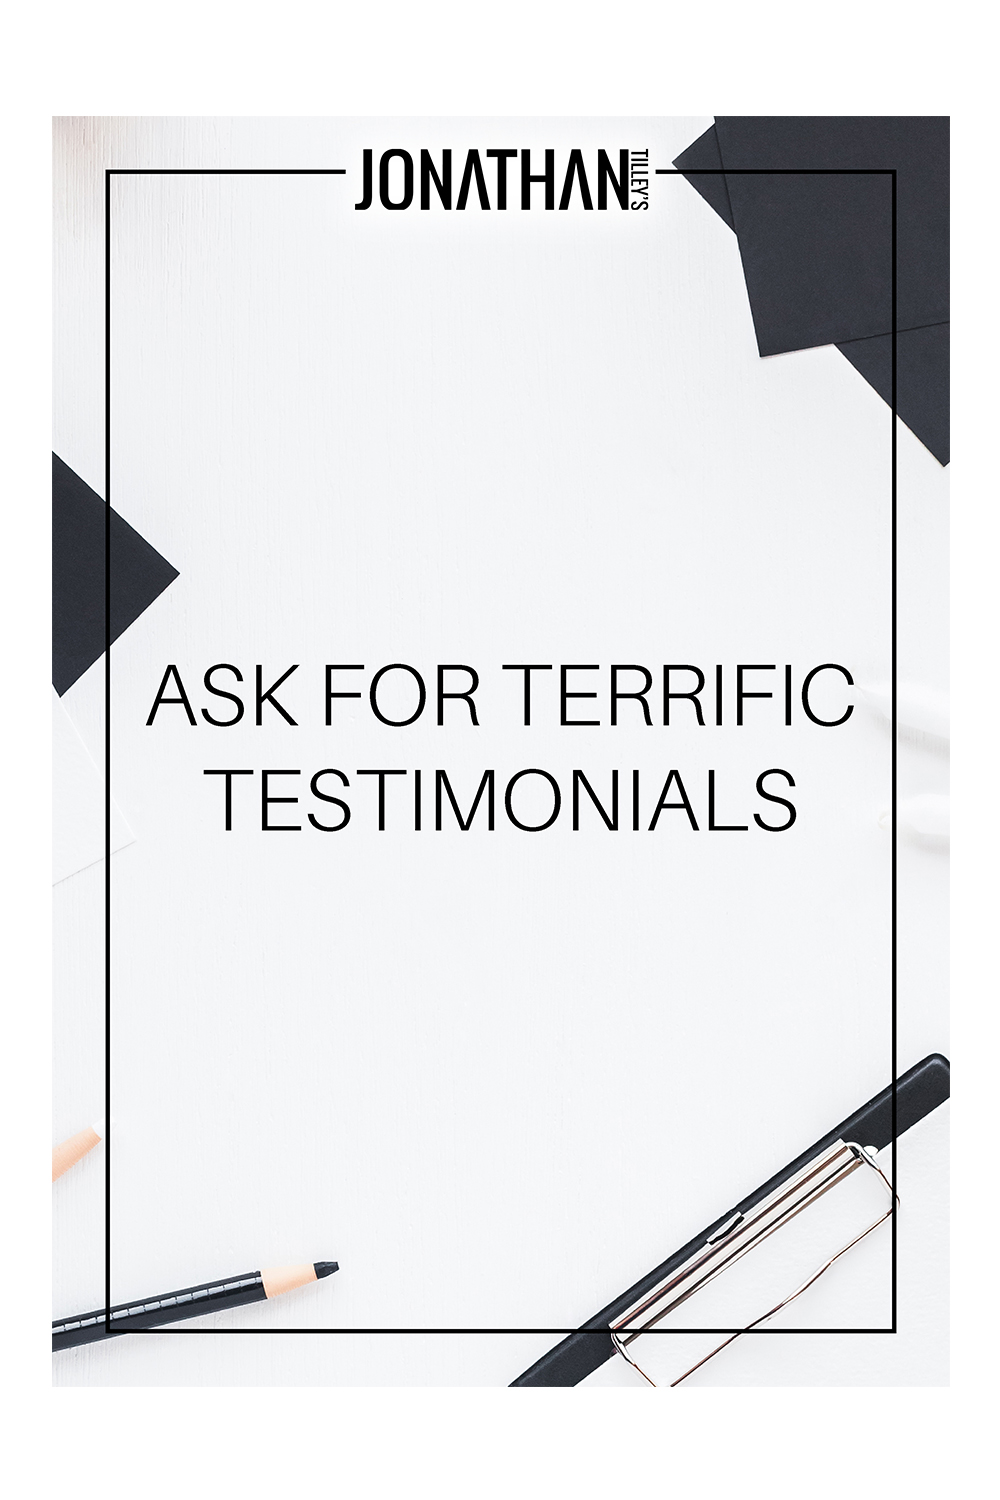 SS-Ask For Terrific Testimonials.jpg